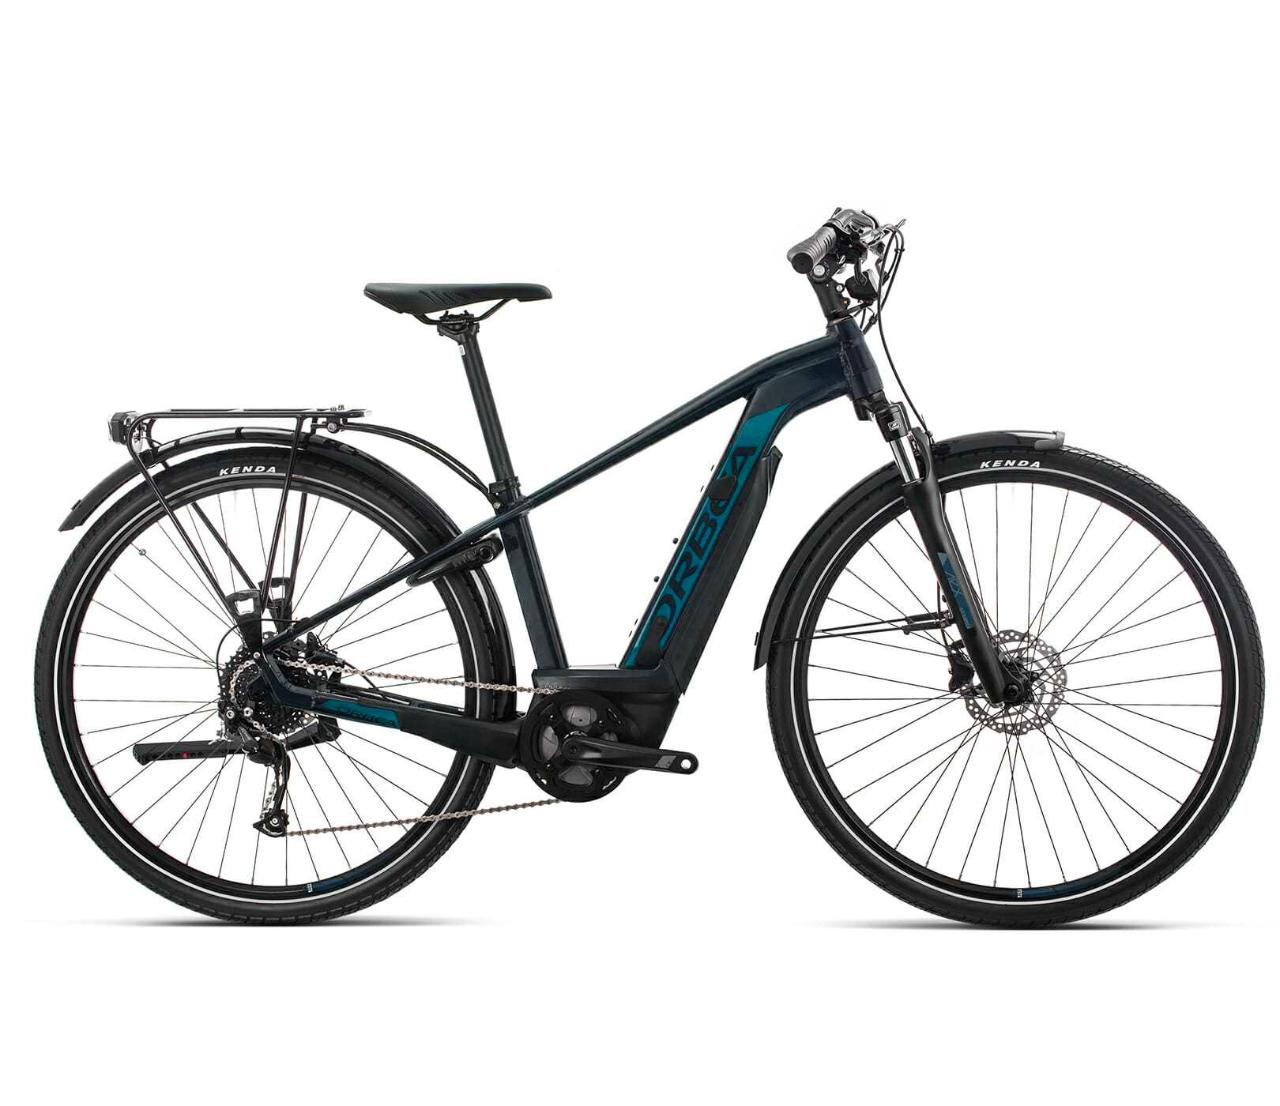 Orbea Keram Comfort Hybrid Electric Bike 52-54